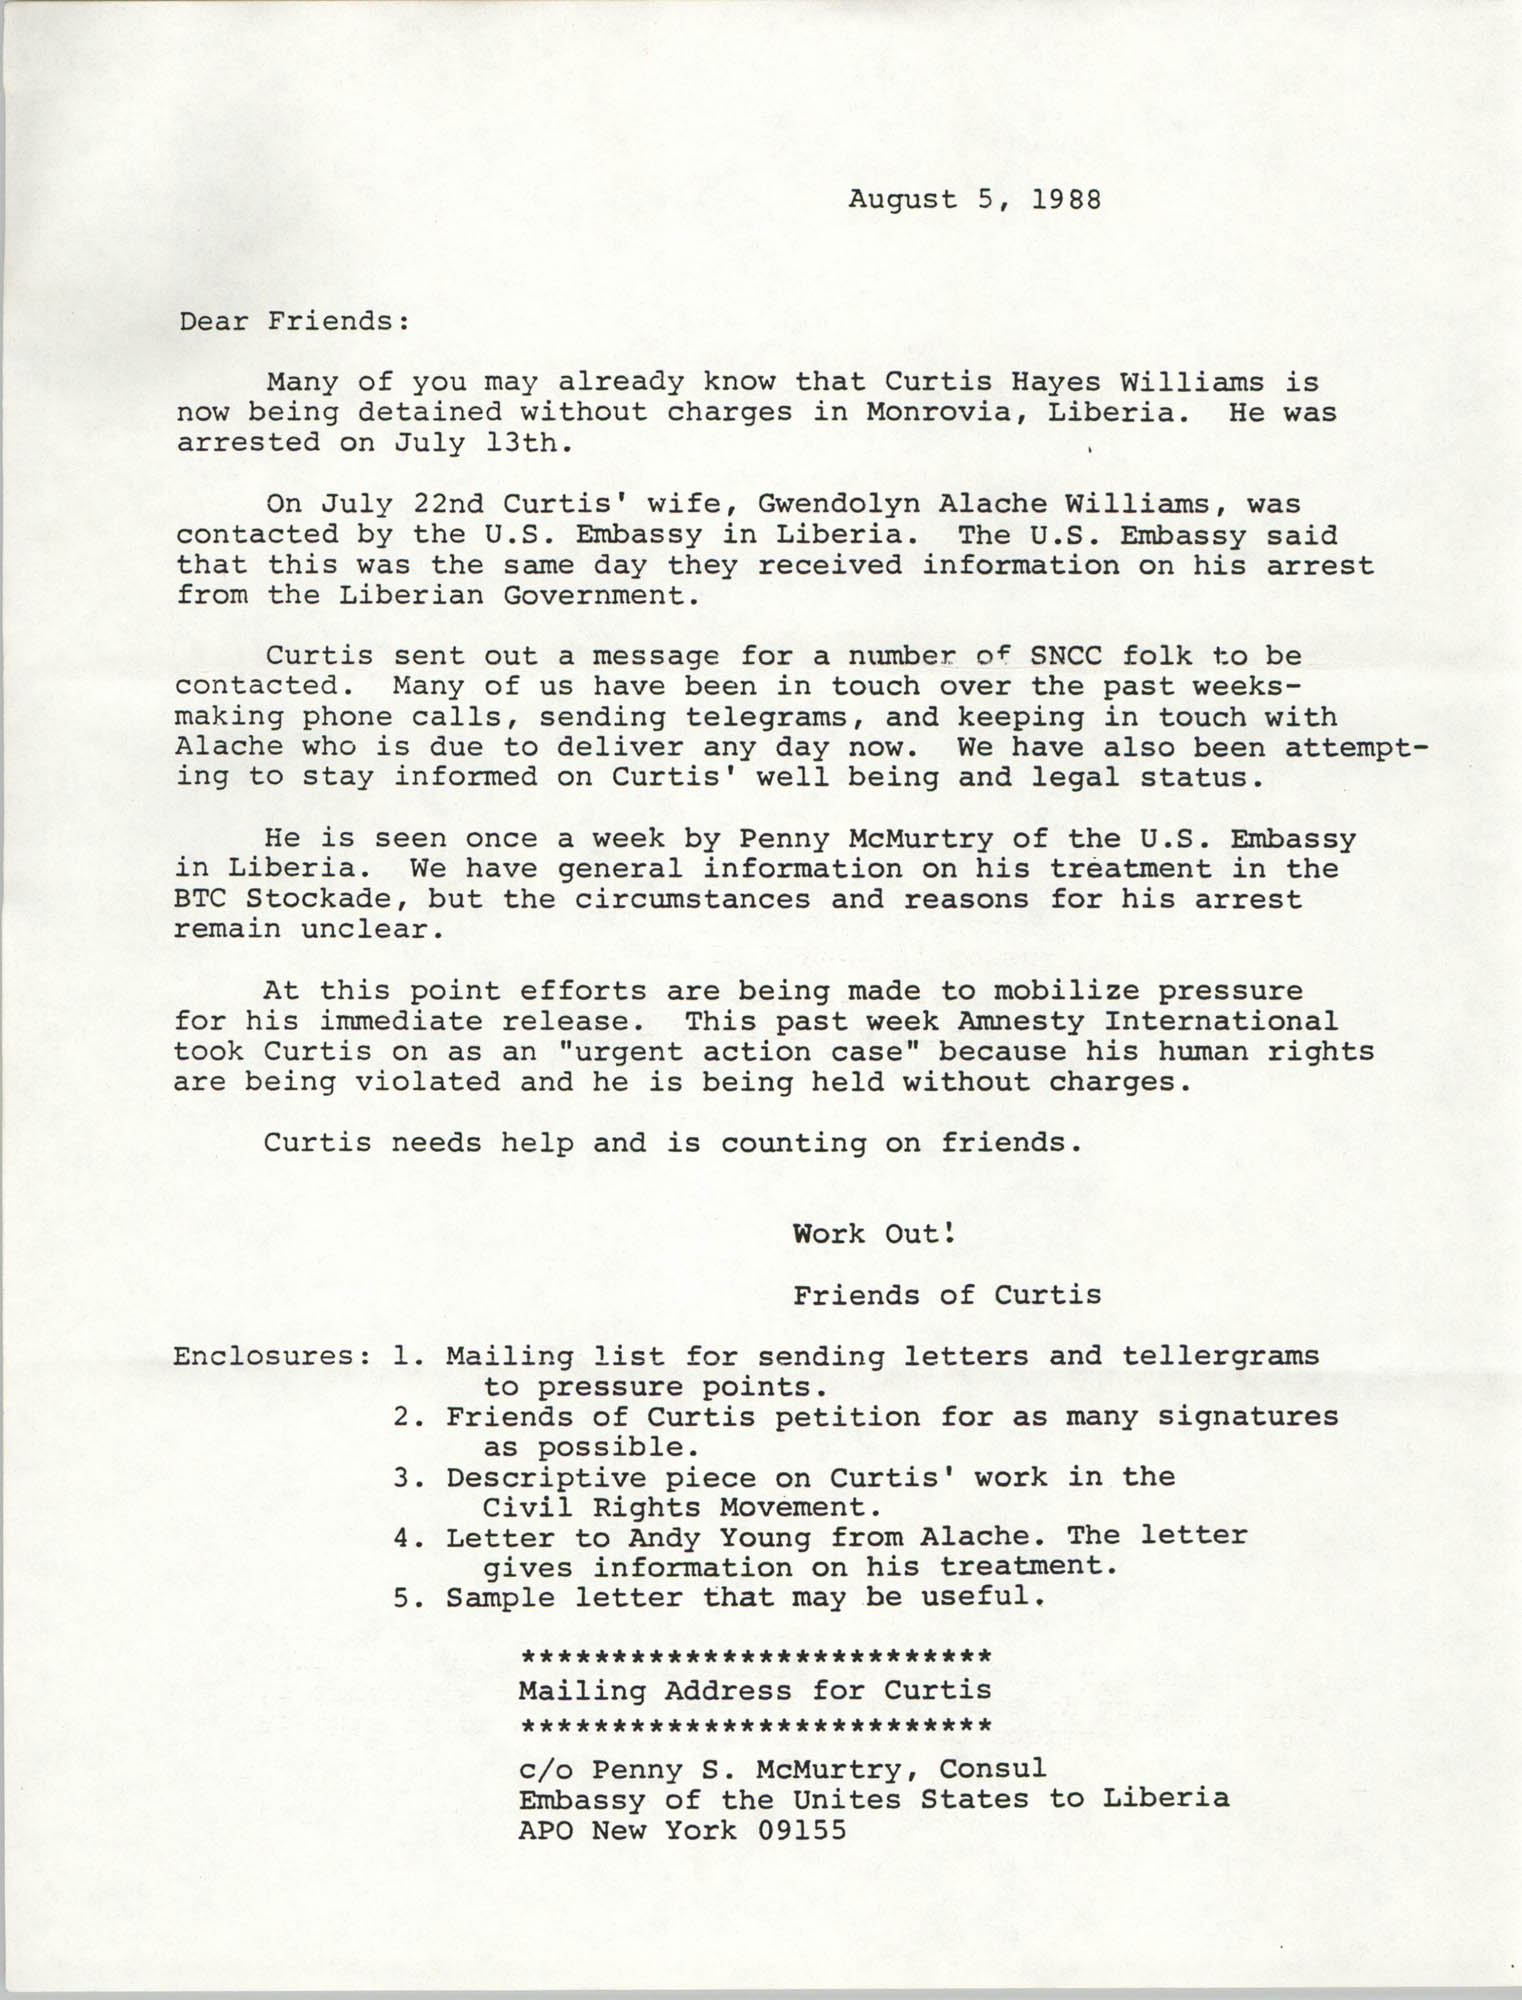 Letter from Friends of Curtis, August 5, 1988